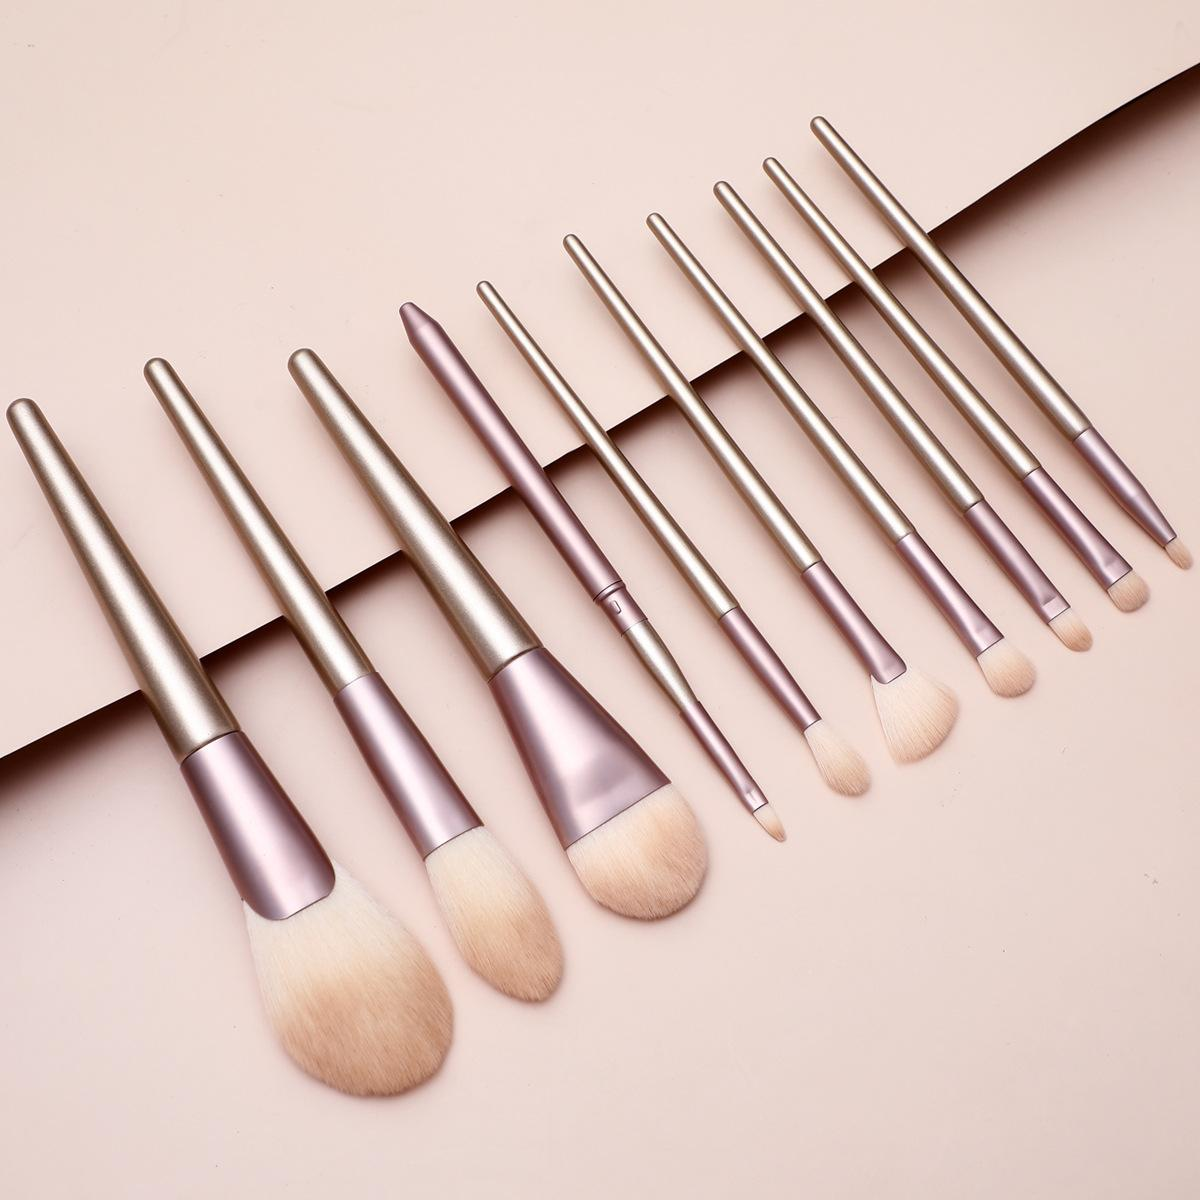 Champagne 10Pcs Makeup brush set Foundation Powder Eyeshadow Eyeliner Blending Synthetic Hair Wooden Handle Cosmetic Brushes Beauty Tools